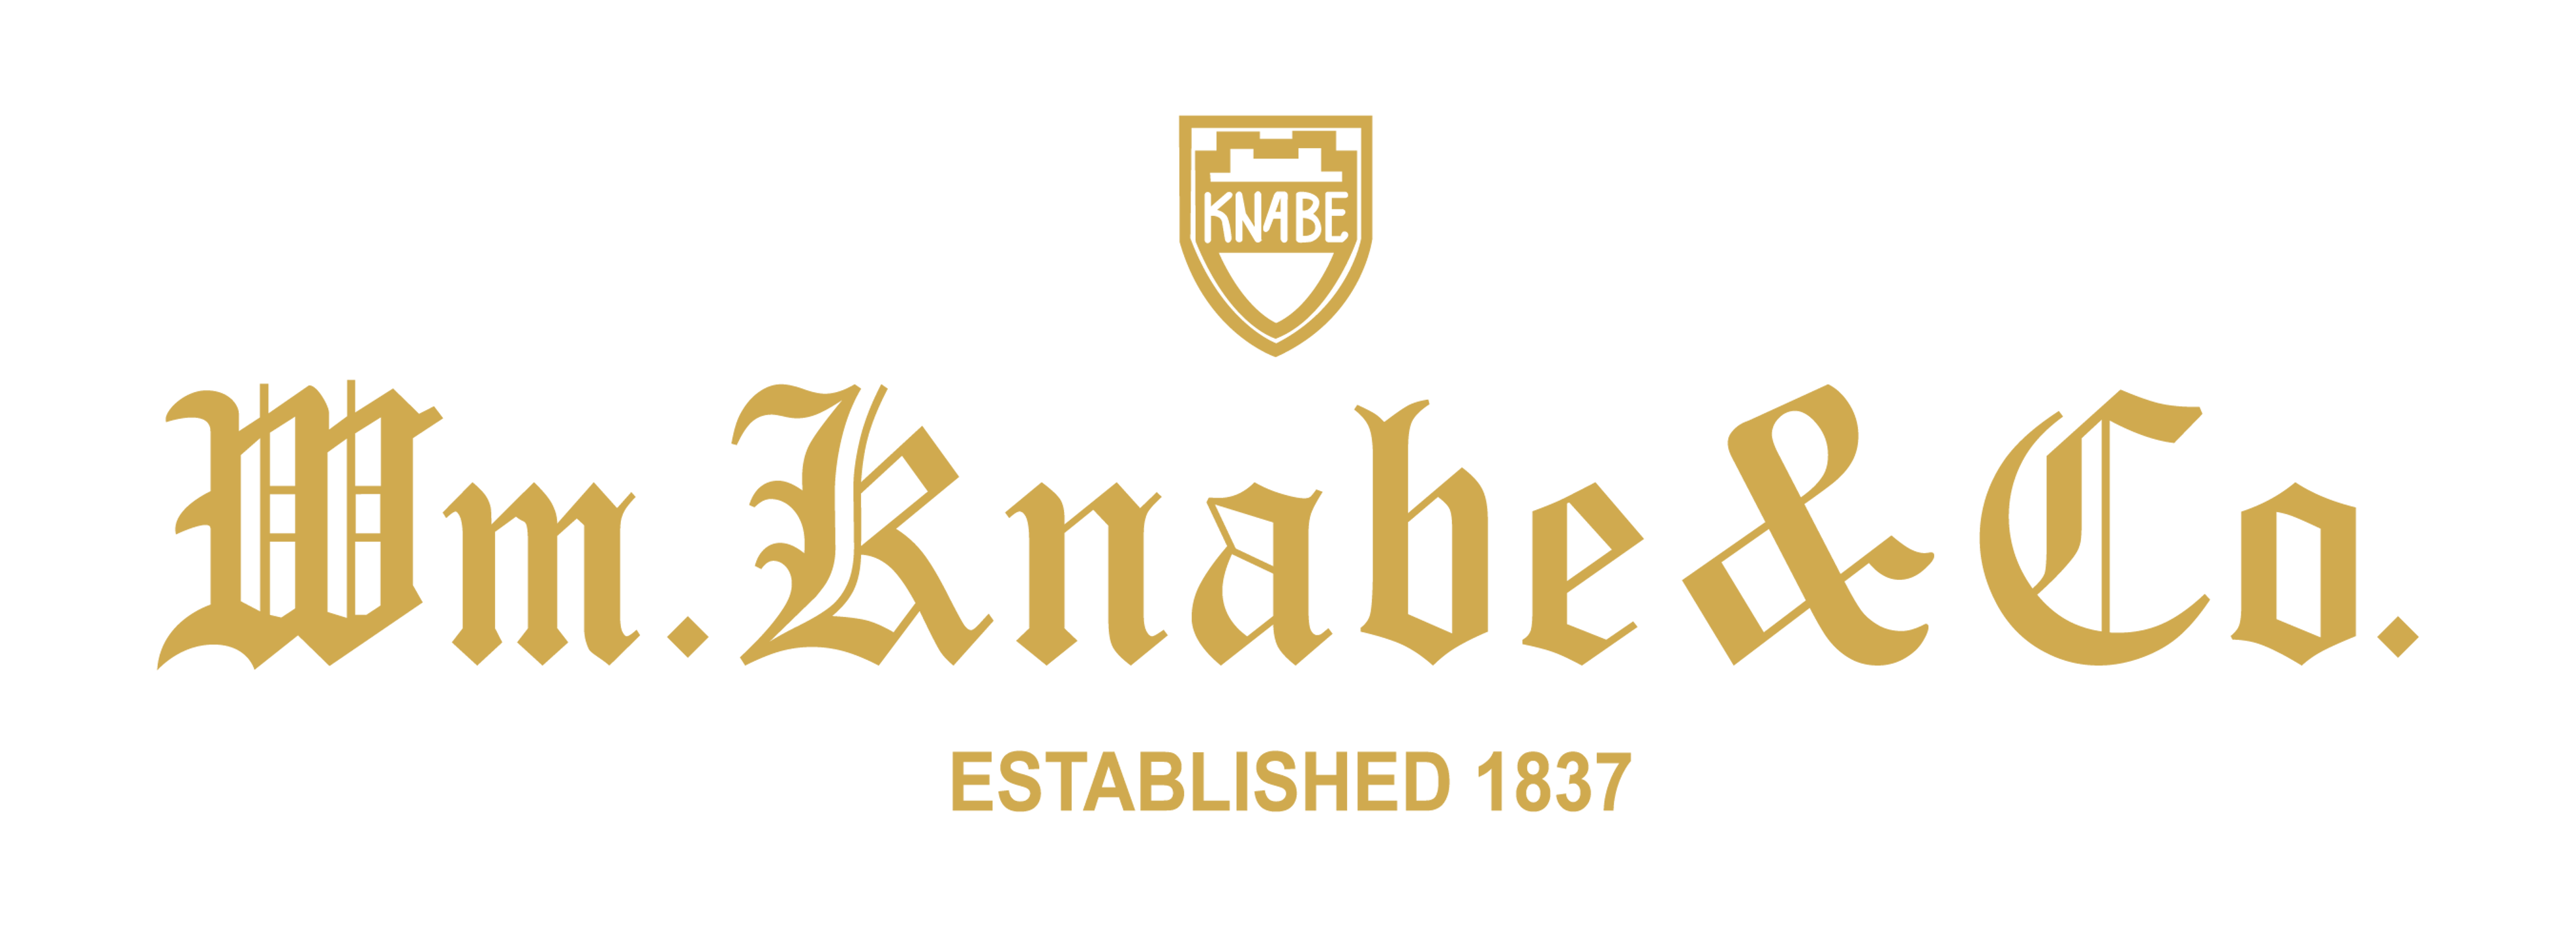 Knabe Marquee